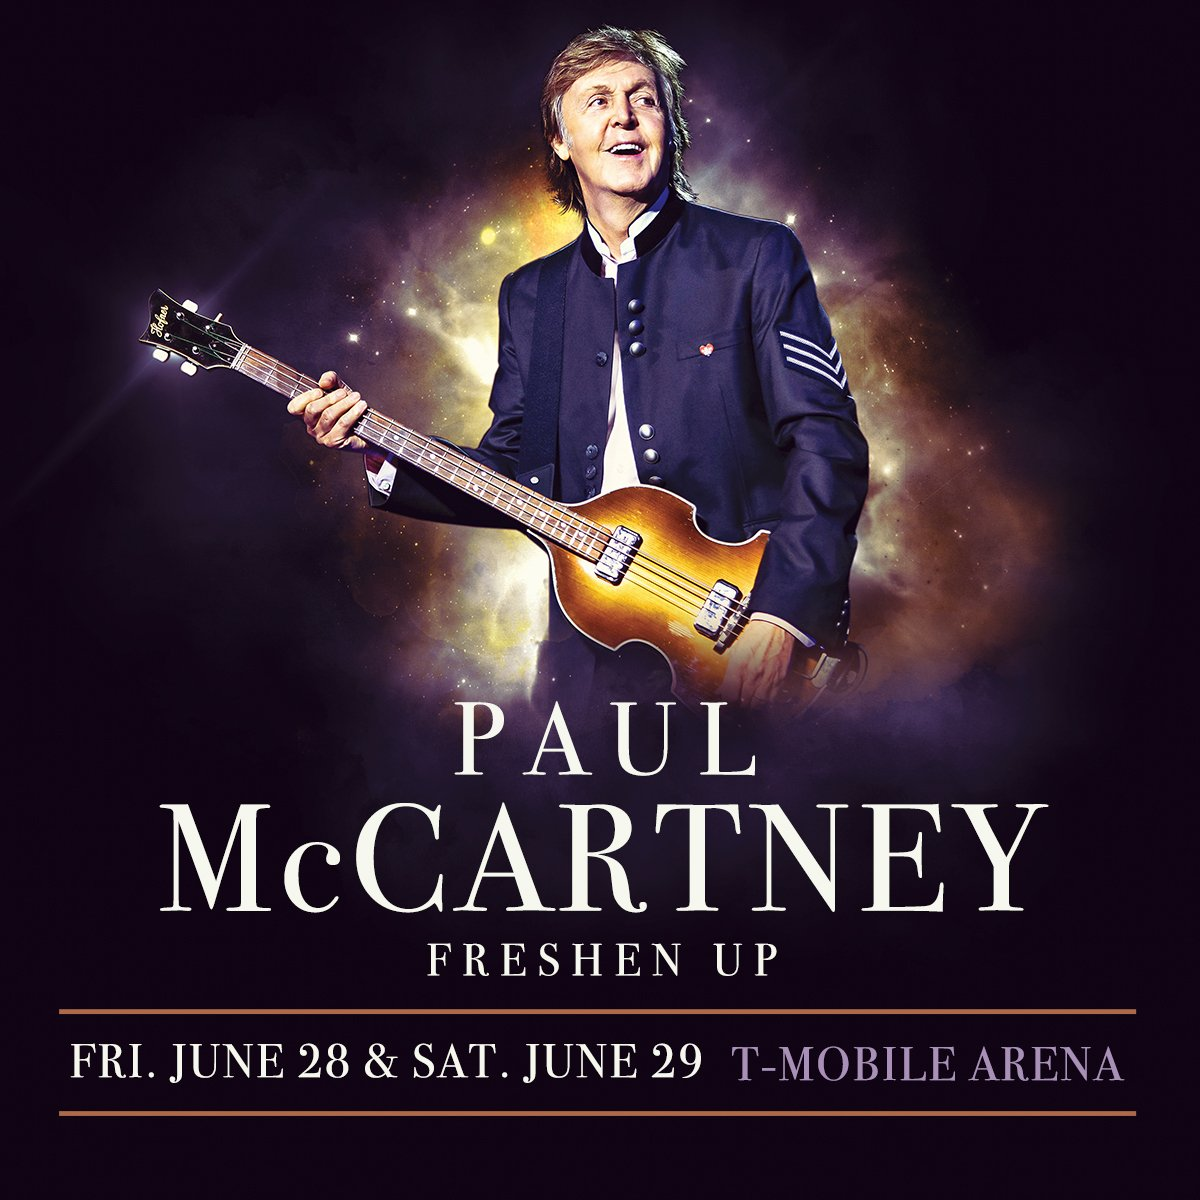 Paul Mccartney At Paulmccartney Twitter